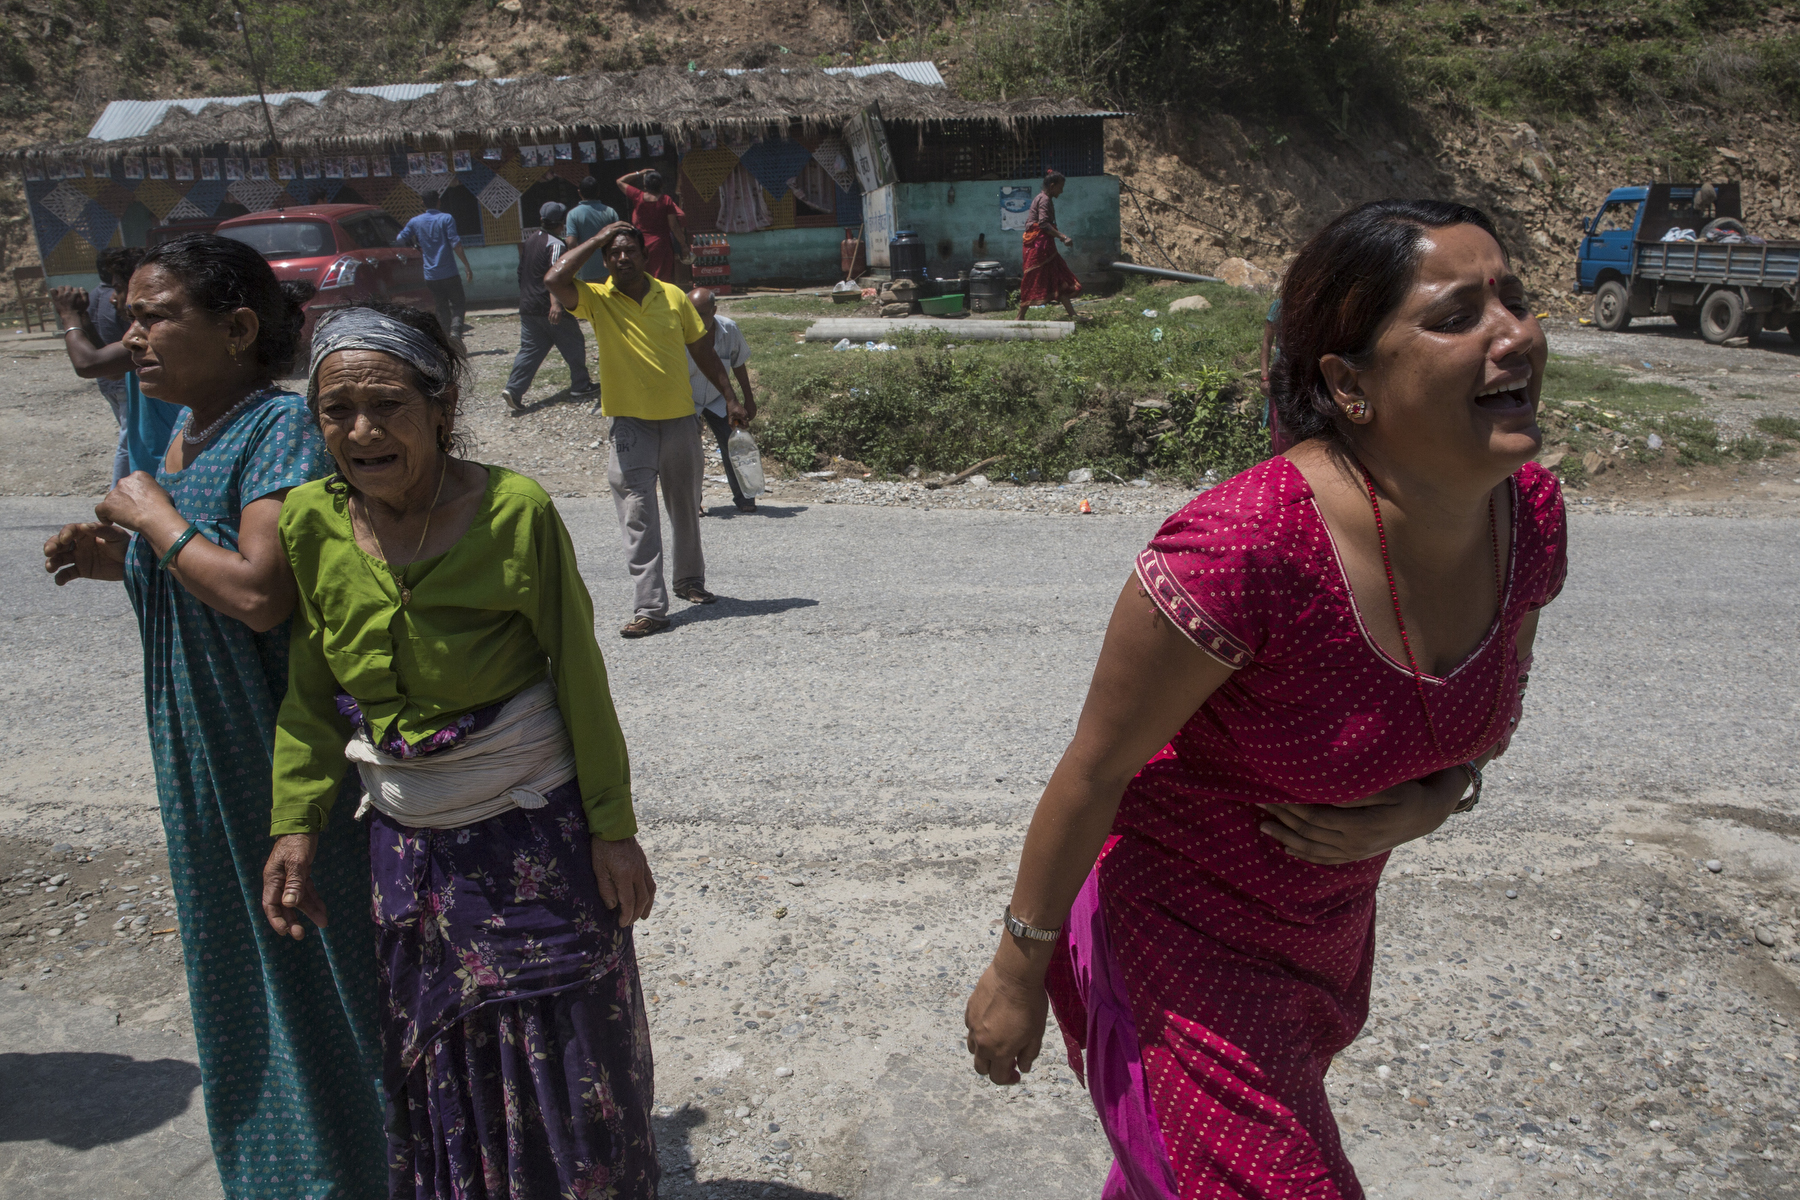 Sindhupalchok District , Nepal -May 12, 2015: People scream as the 7.3 earthquakes hits the Tatopani area causing numerous landslides. Photo by Paula Bronstein for IFRC ( International Federation of Red Cross) Wall Street Journal)